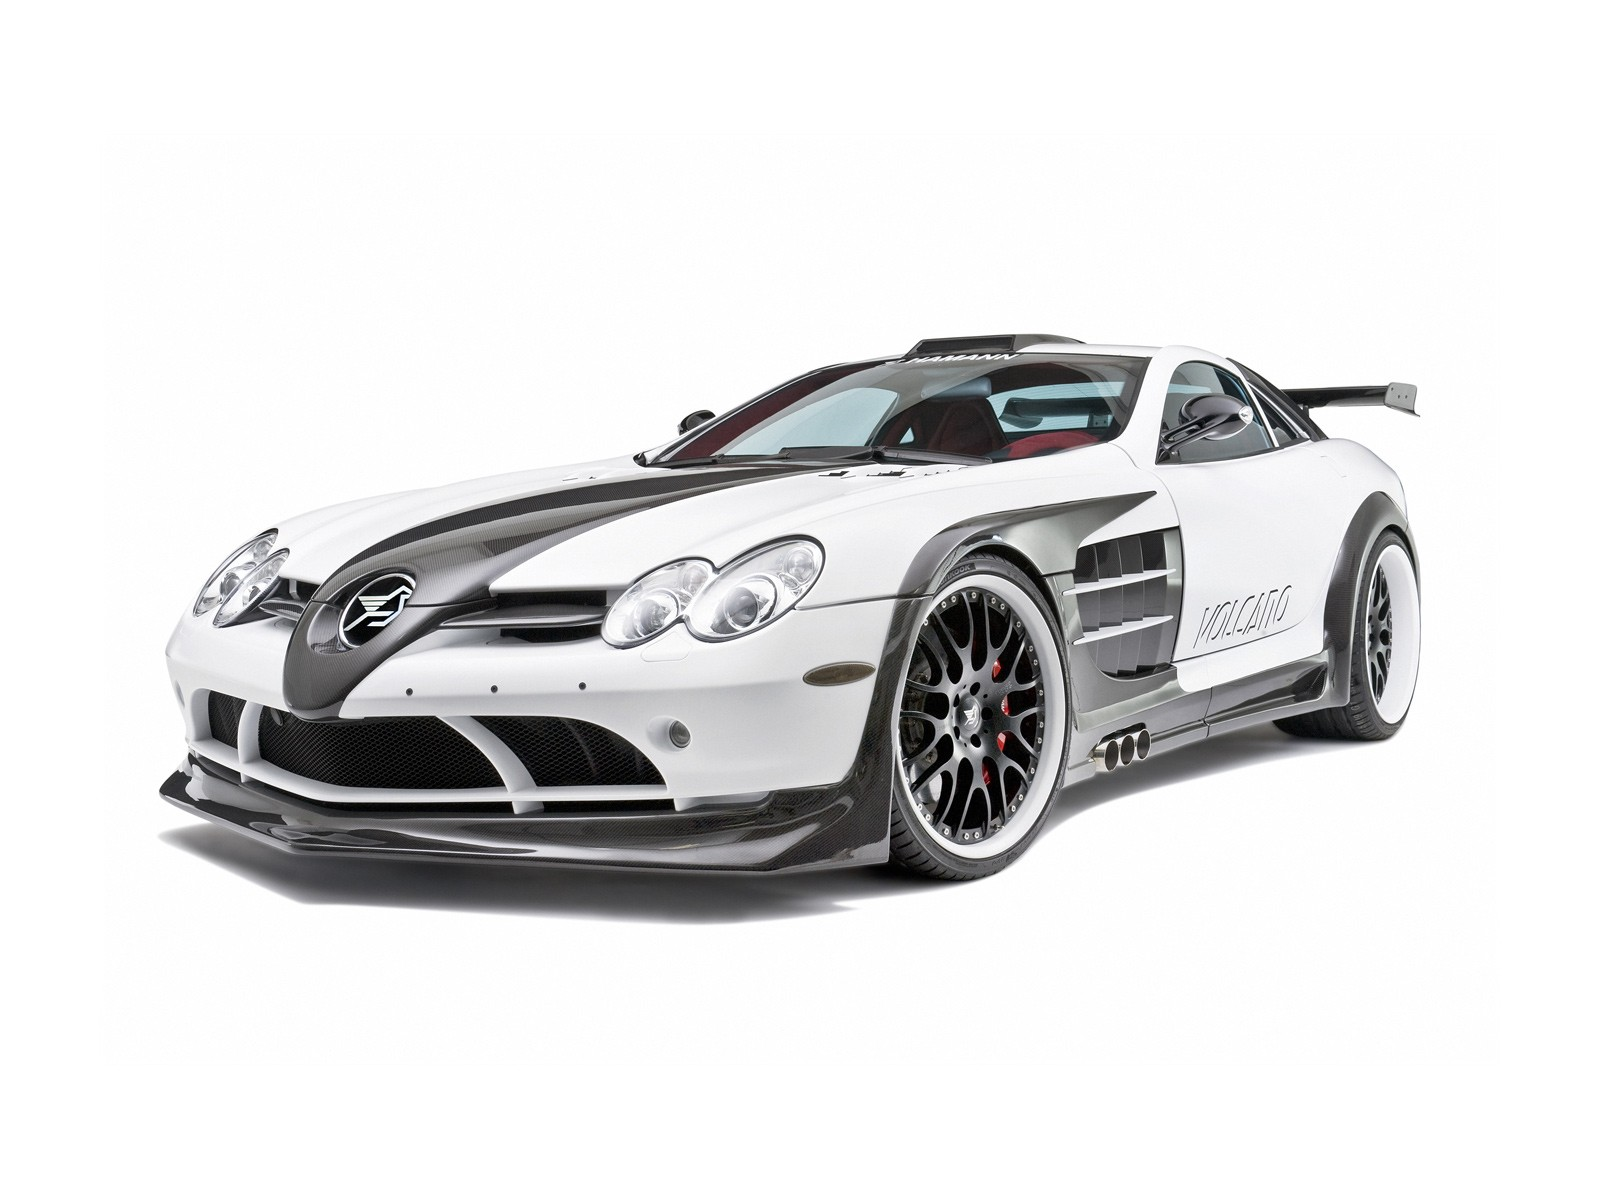 Mercedes benz slr wallpapers world of cars for Mercedes benz car images